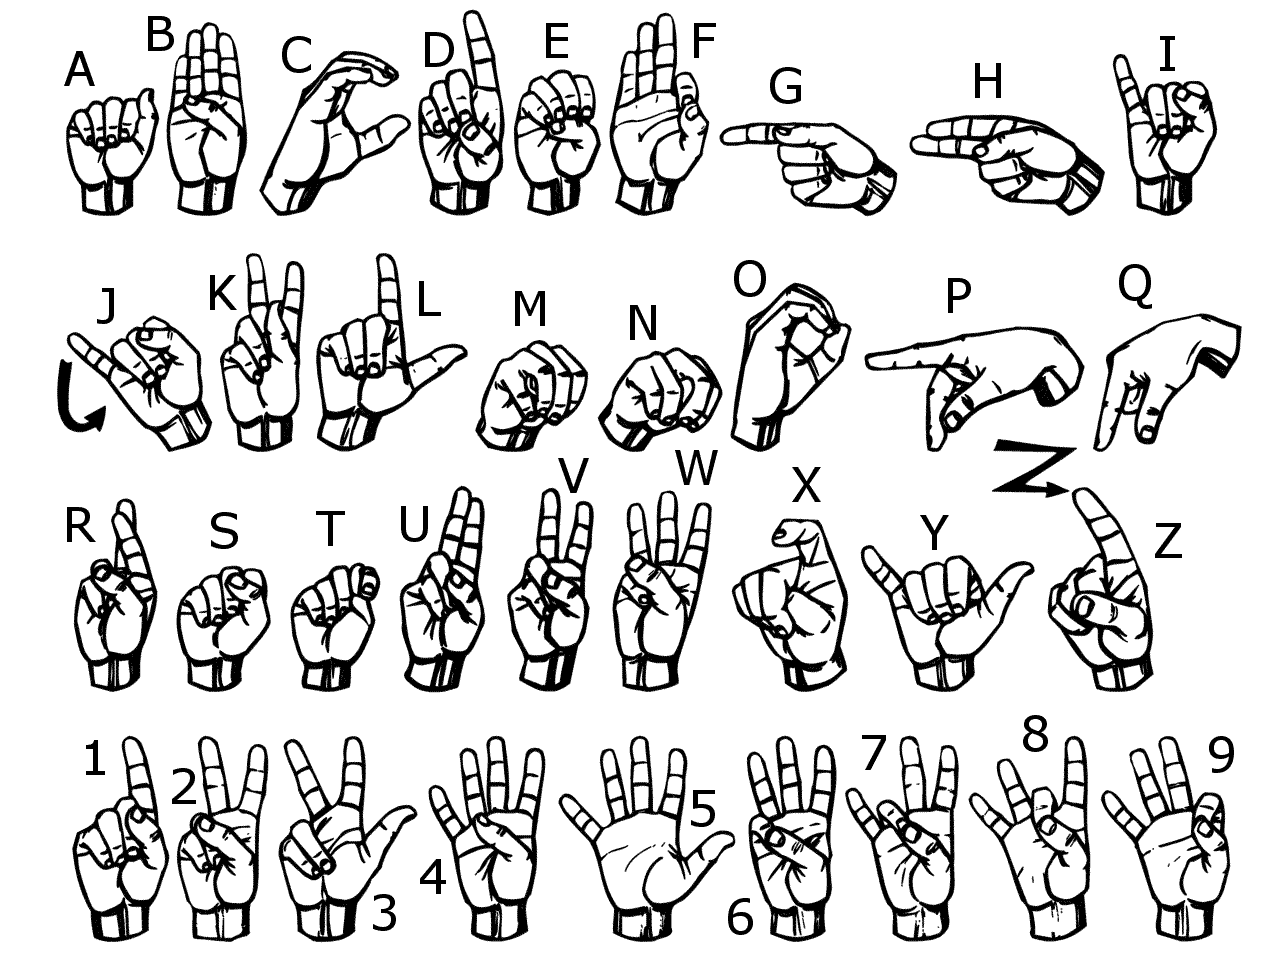 join the club  sign away with sfu asl